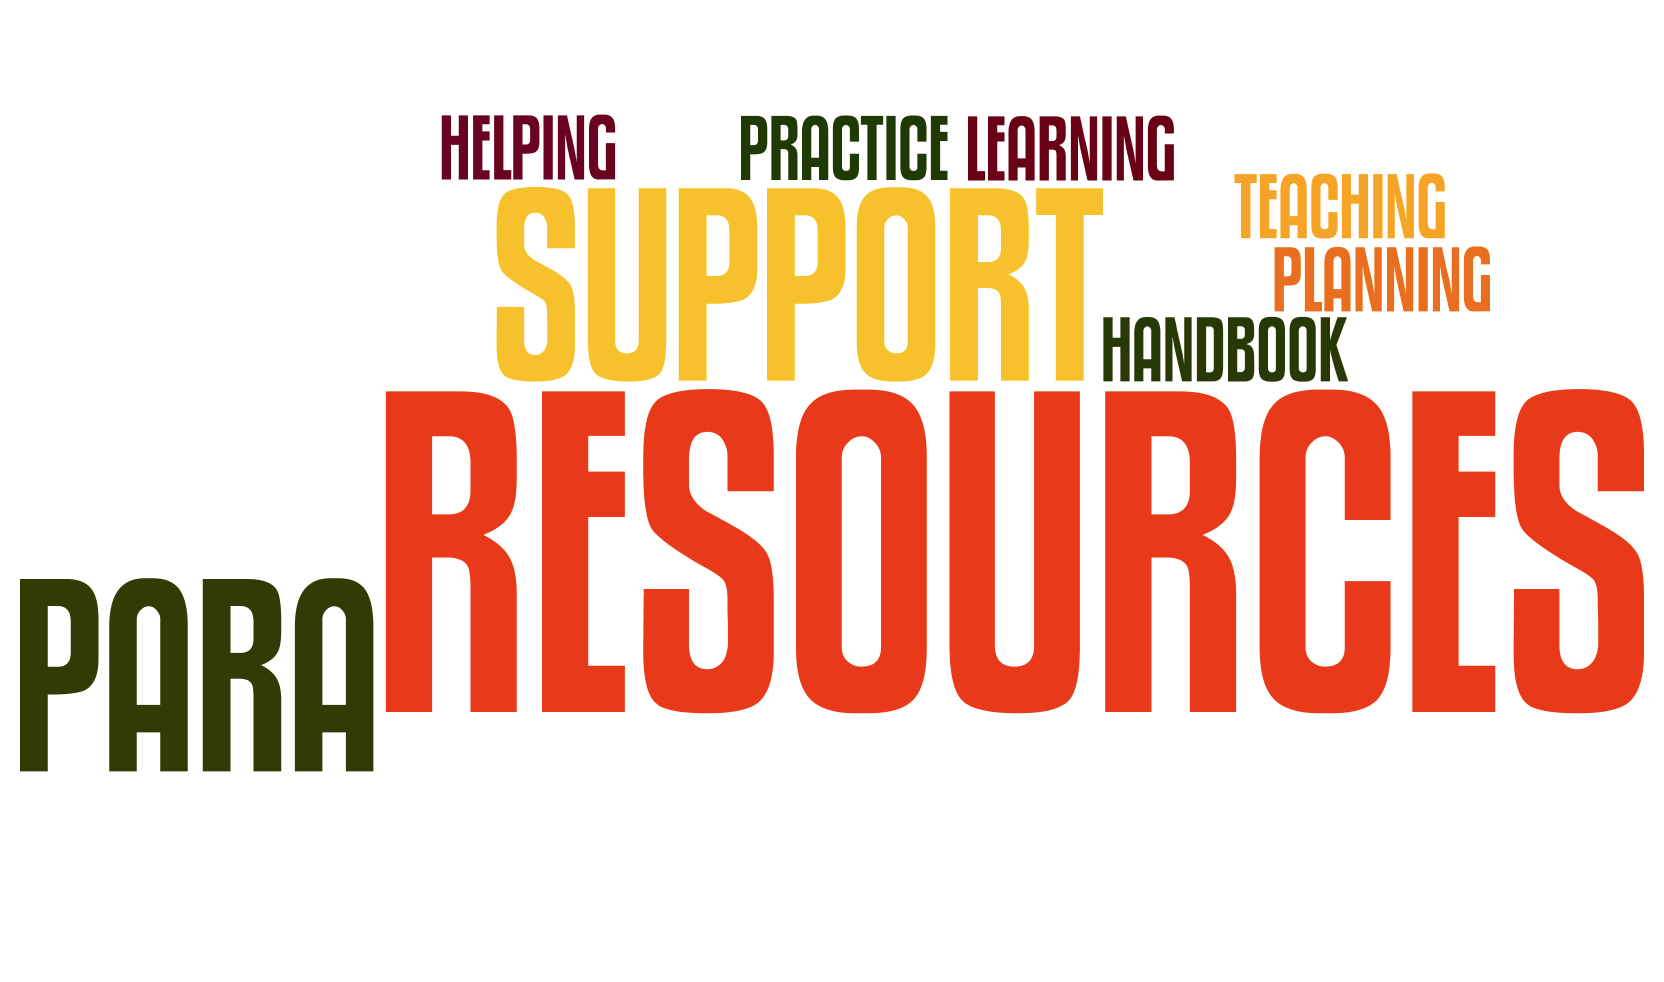 A wordle for Para educator resources